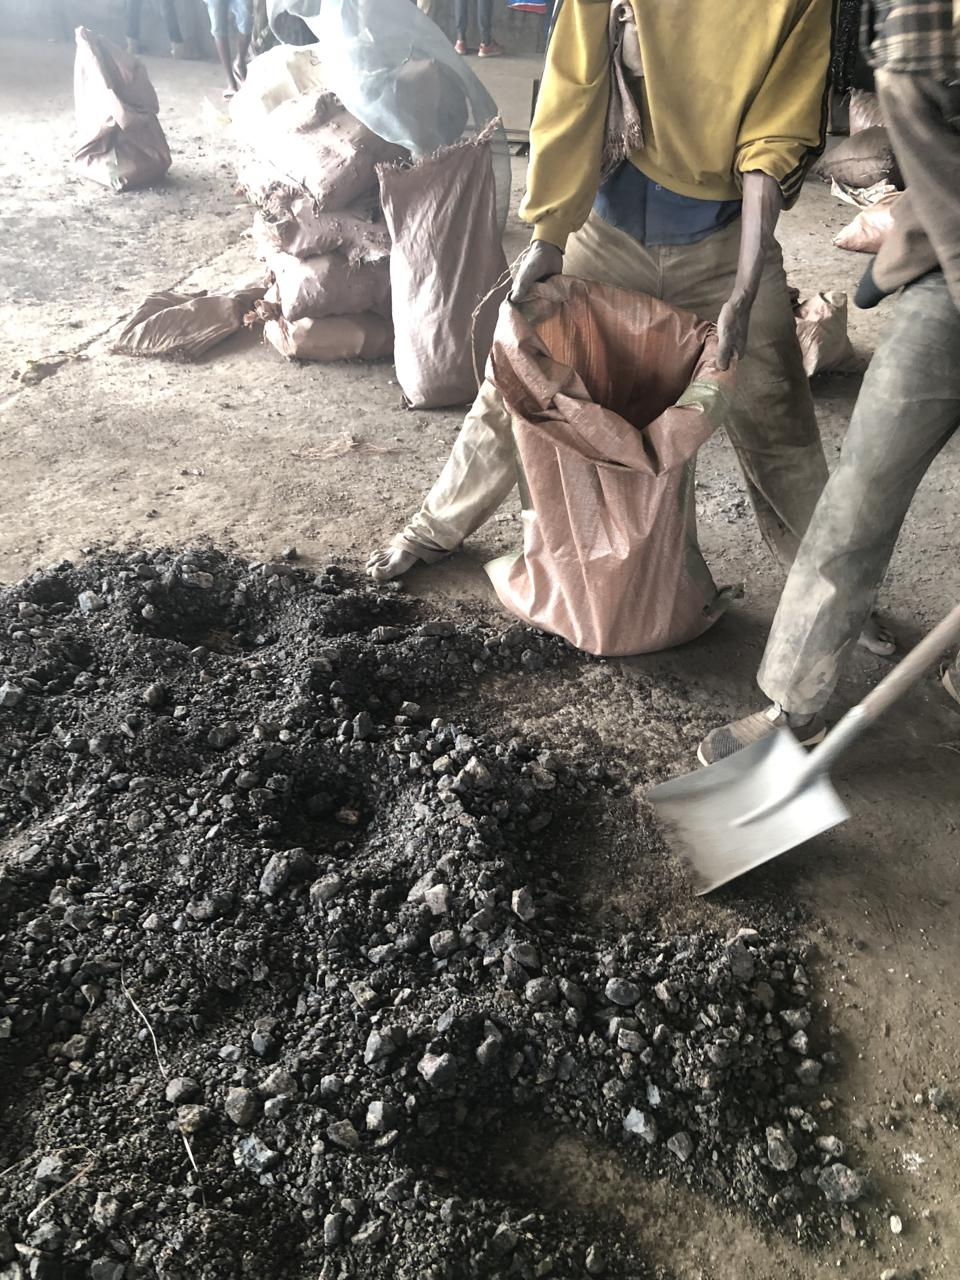 Image of workers shoveling cobalt at a mine in the Democratic Republic of the Congo.